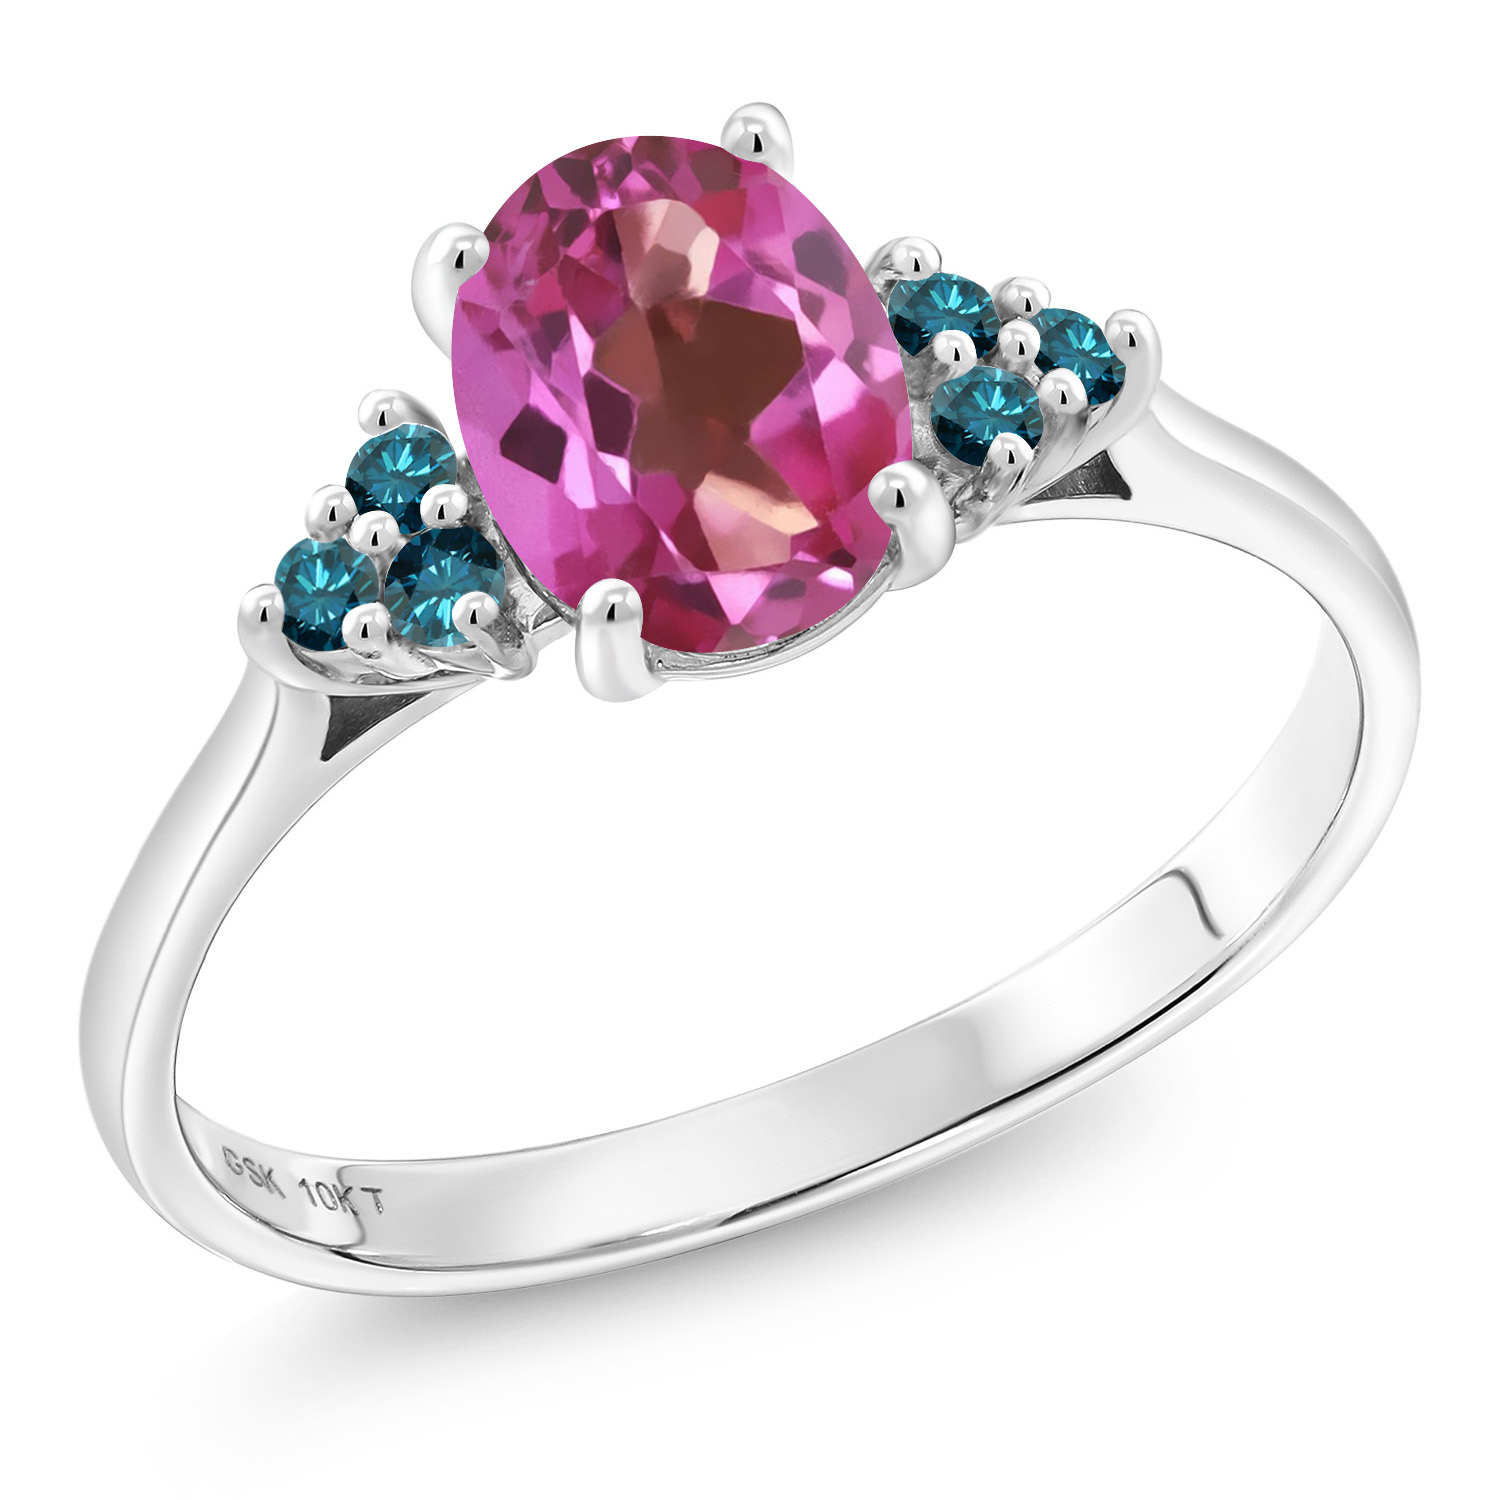 1.45 Ct Oval Pink Mystic Topaz bluee Diamond 10K White gold Ring